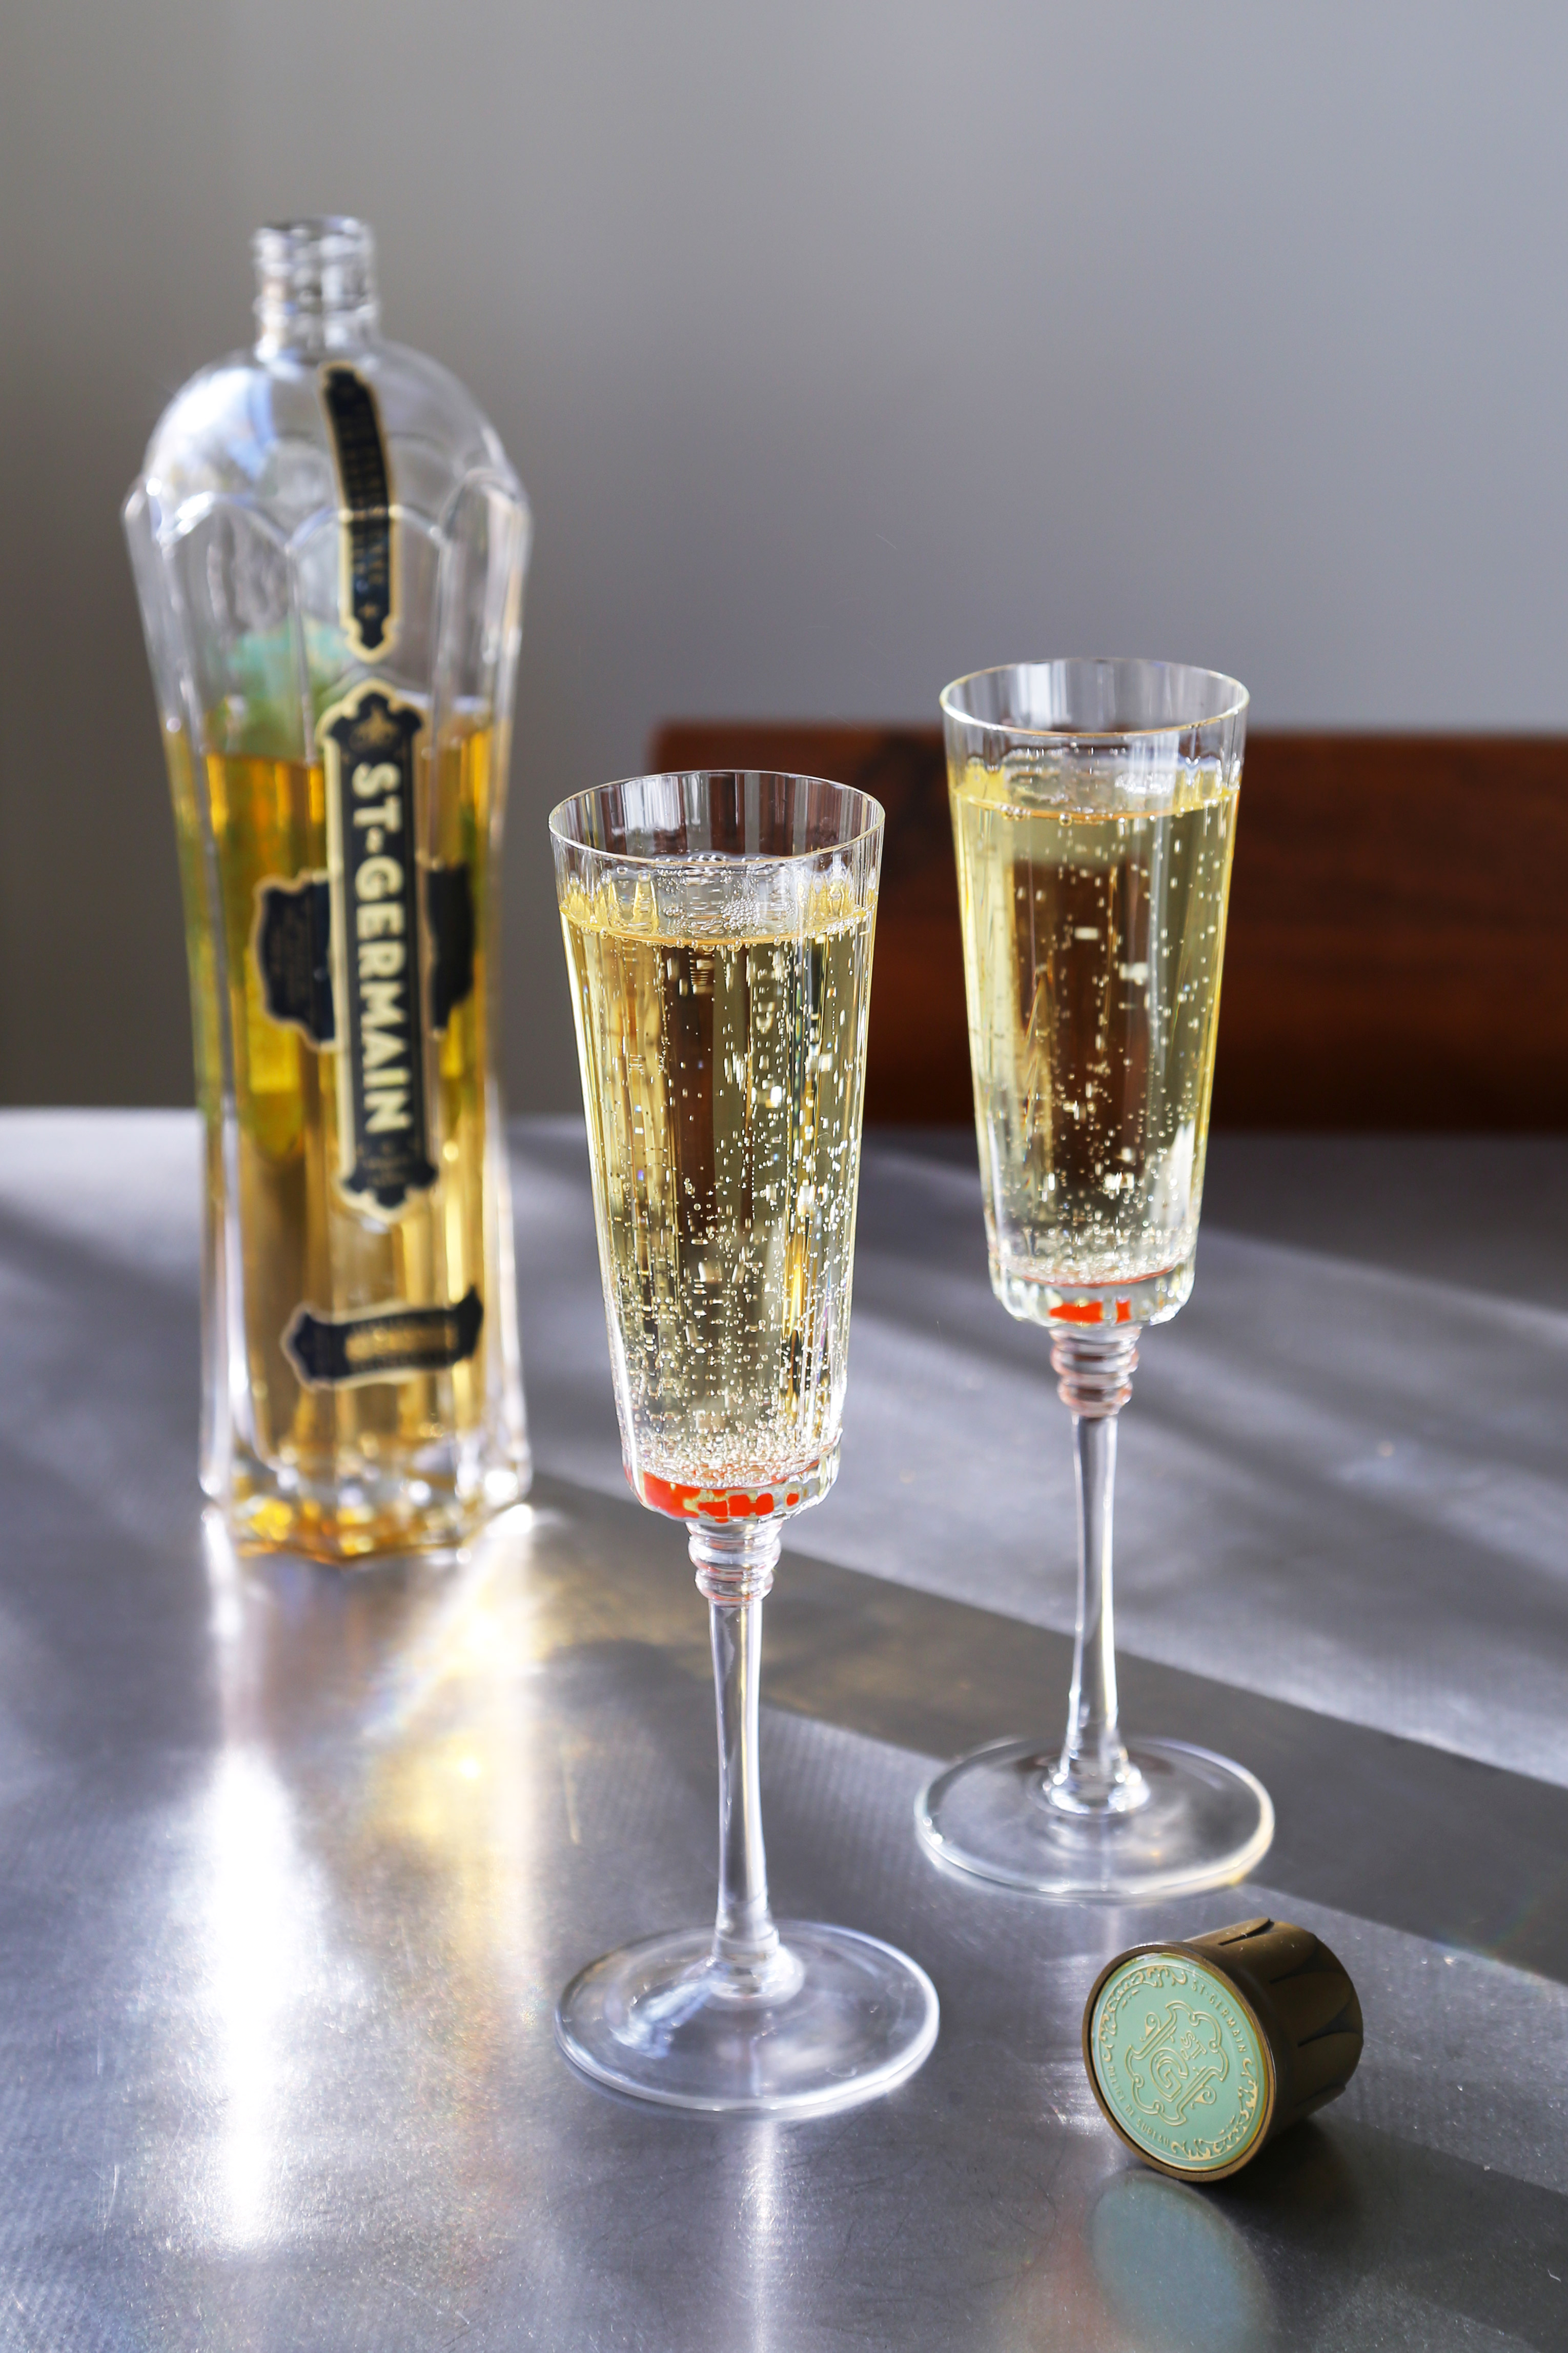 St germain and champagne sisterspd